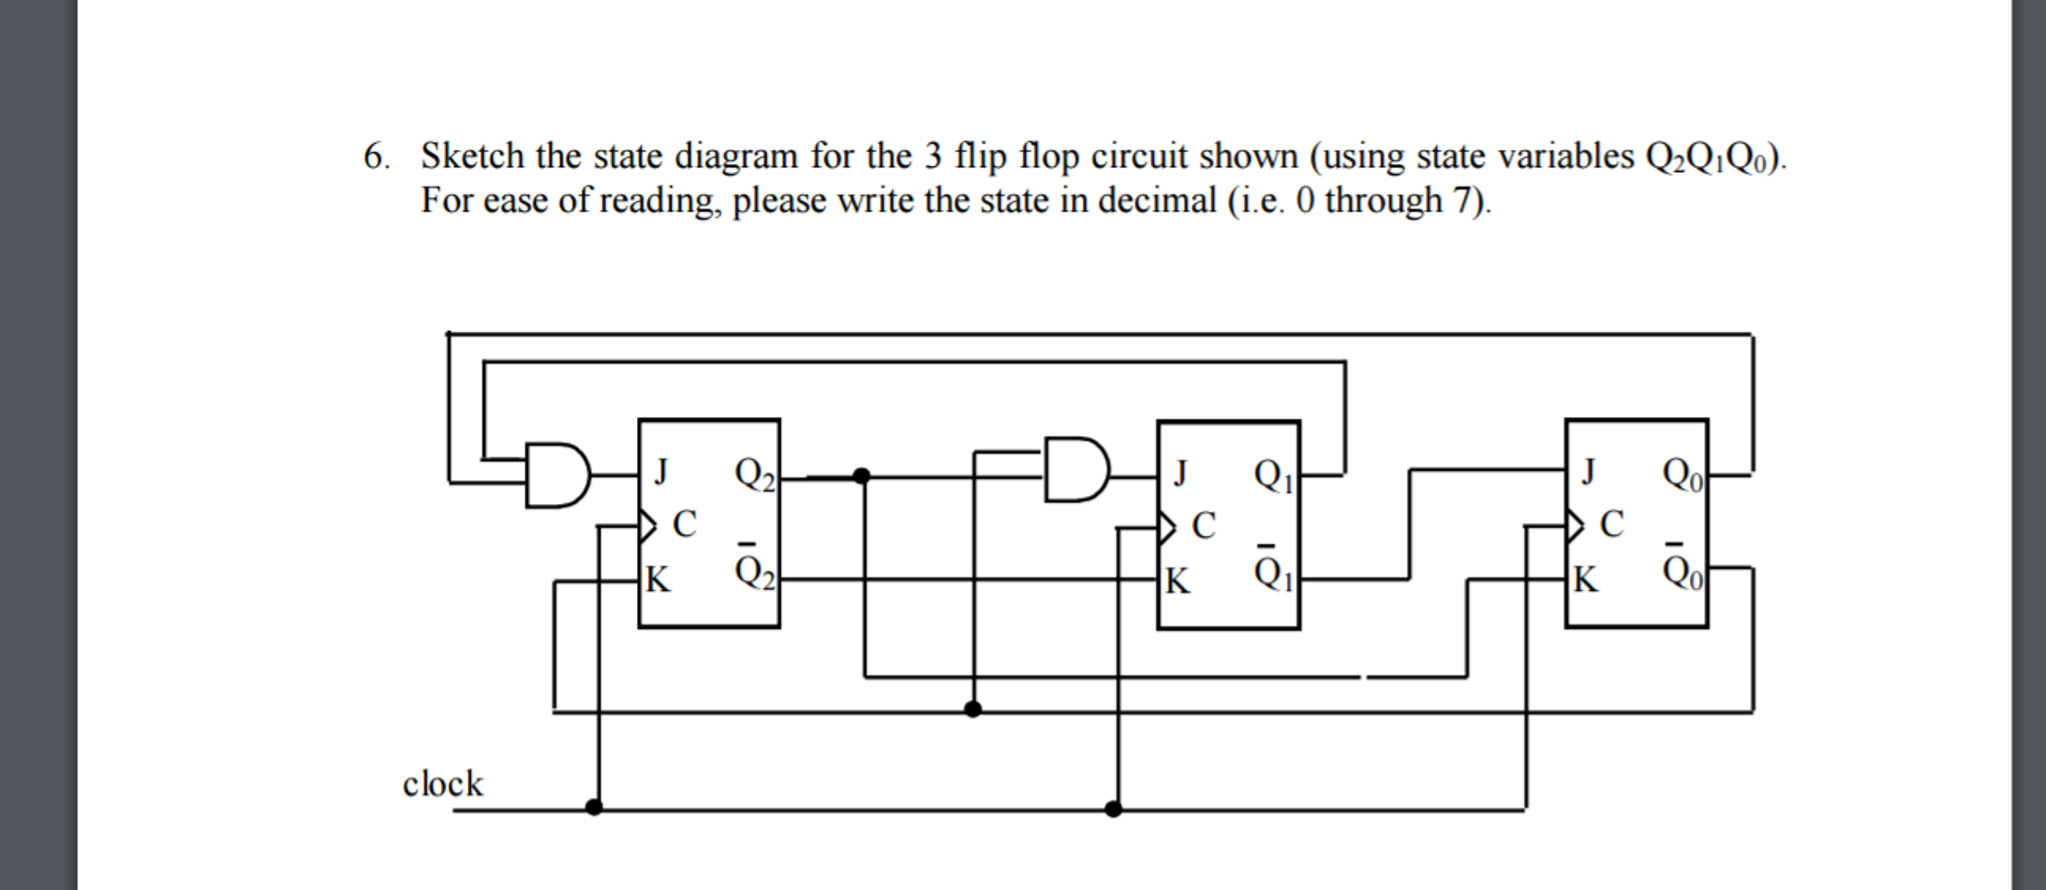 Sketch the state diagram for the 3 flip flop circu chegg question sketch the state diagram for the 3 flip flop circuit shown using state variables q2q1q0 for pooptronica